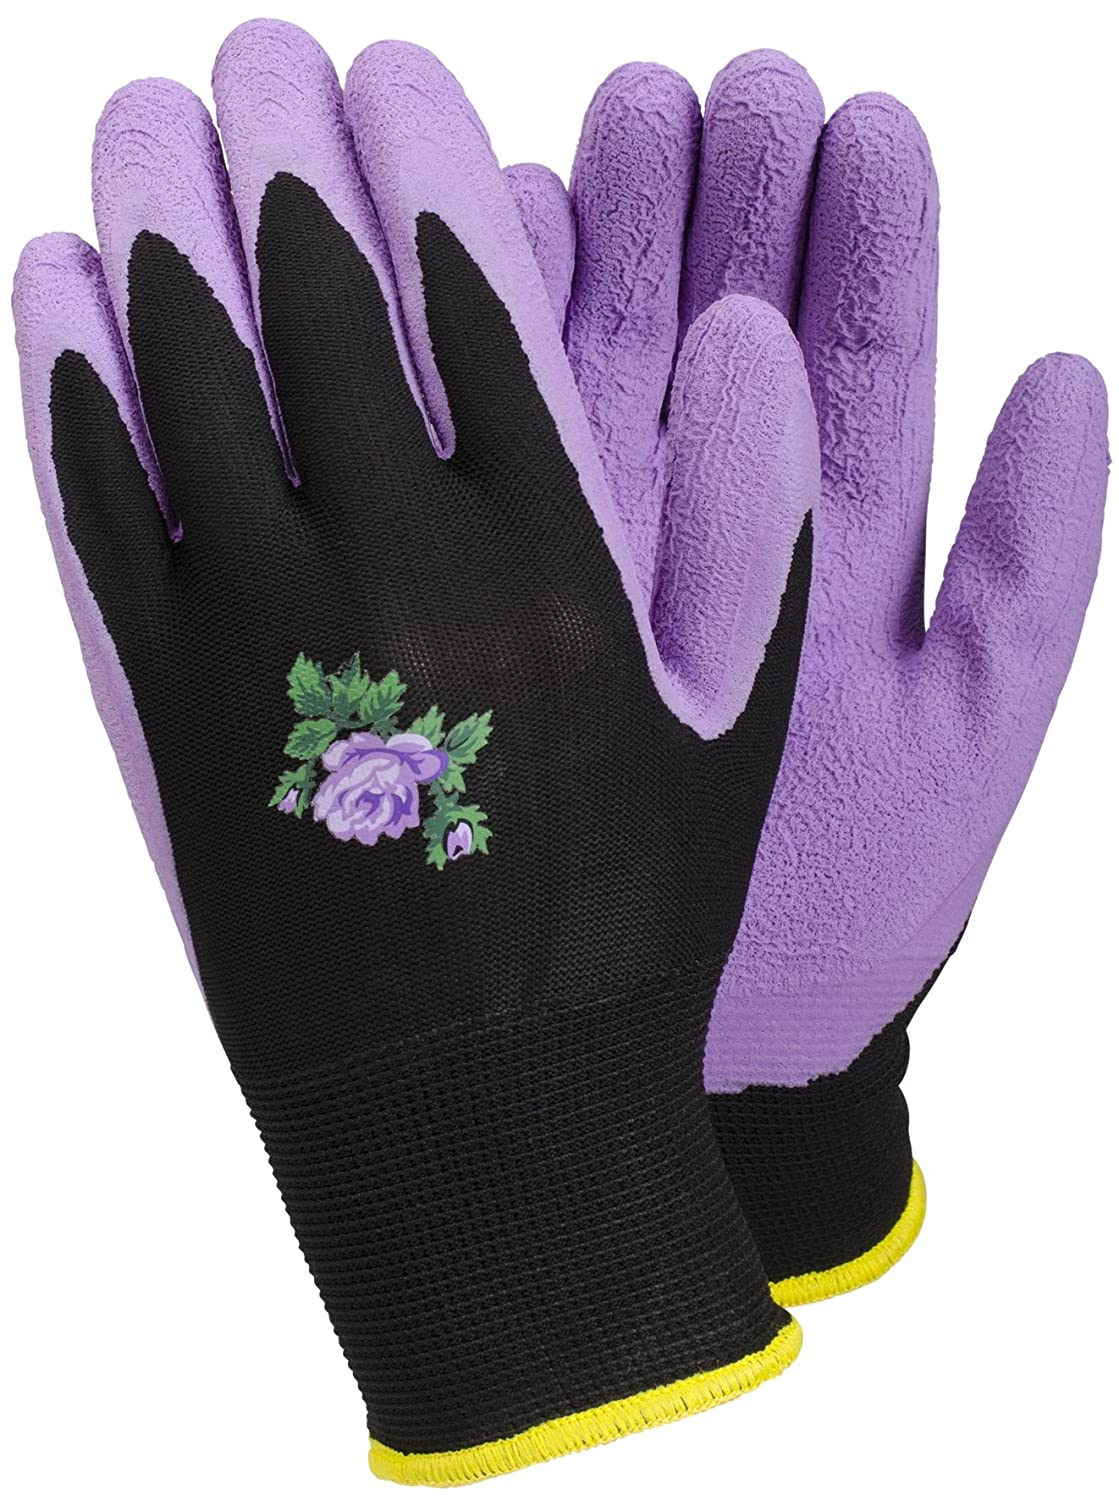 TEGERA [90068 Ladies Womens Purple Gardening Gloves Latex Water Repellent Palm Size 6 (X-Small)